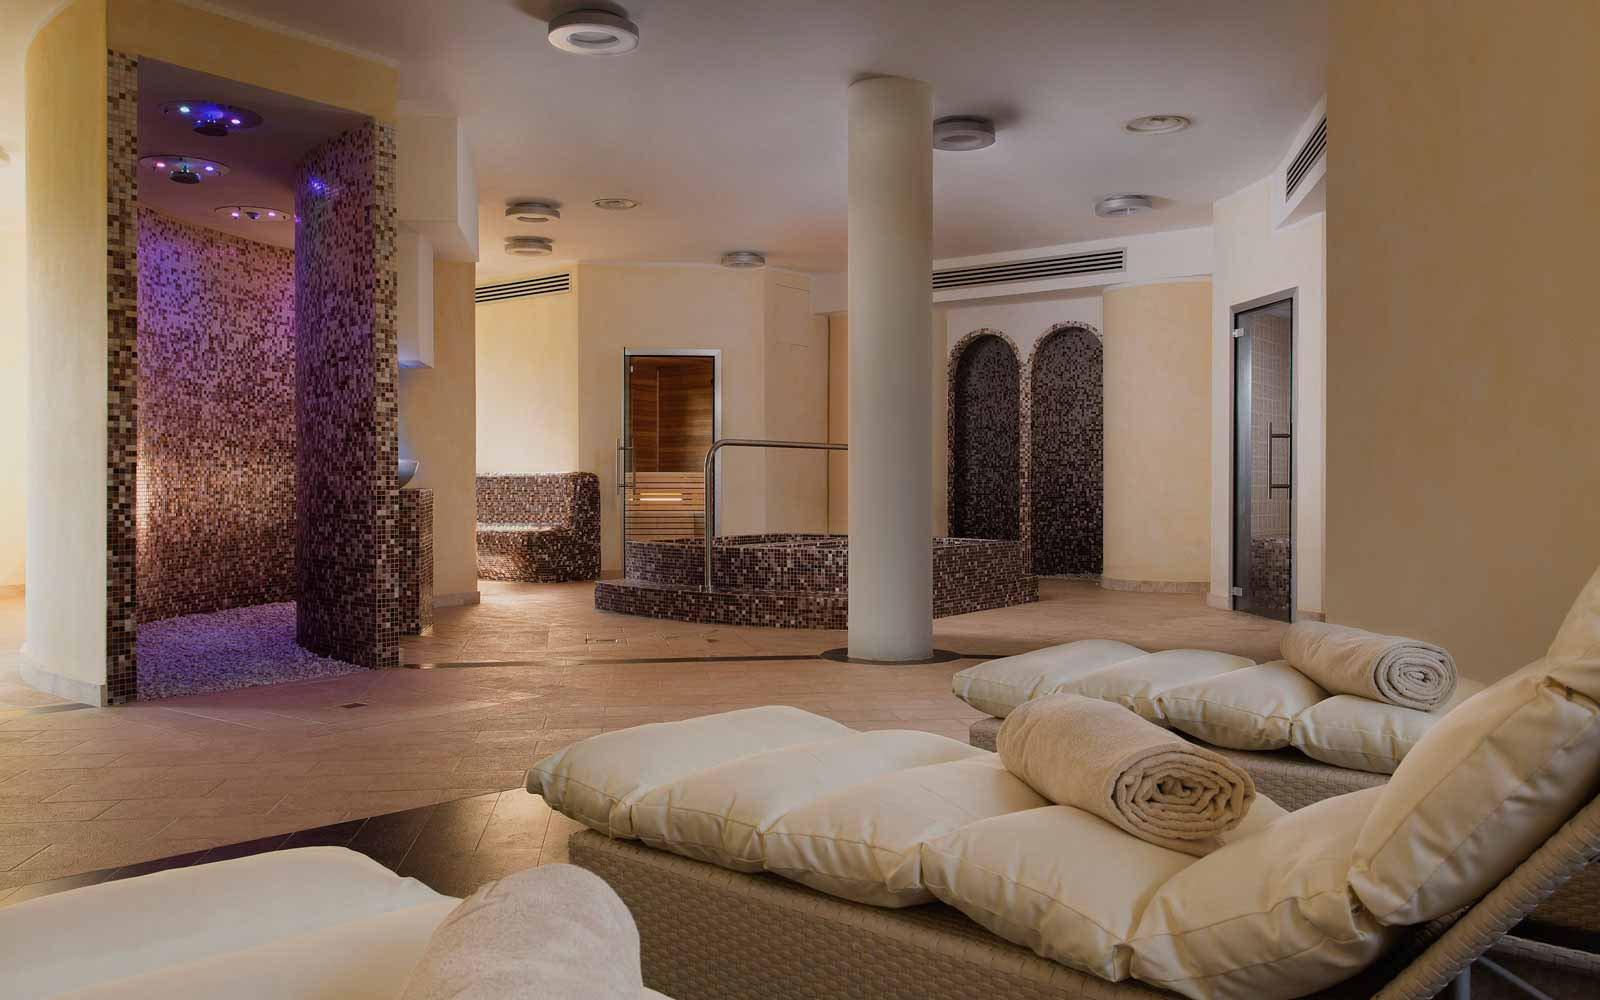 Spa relax area at Hotel La Rocca Resort & Spa